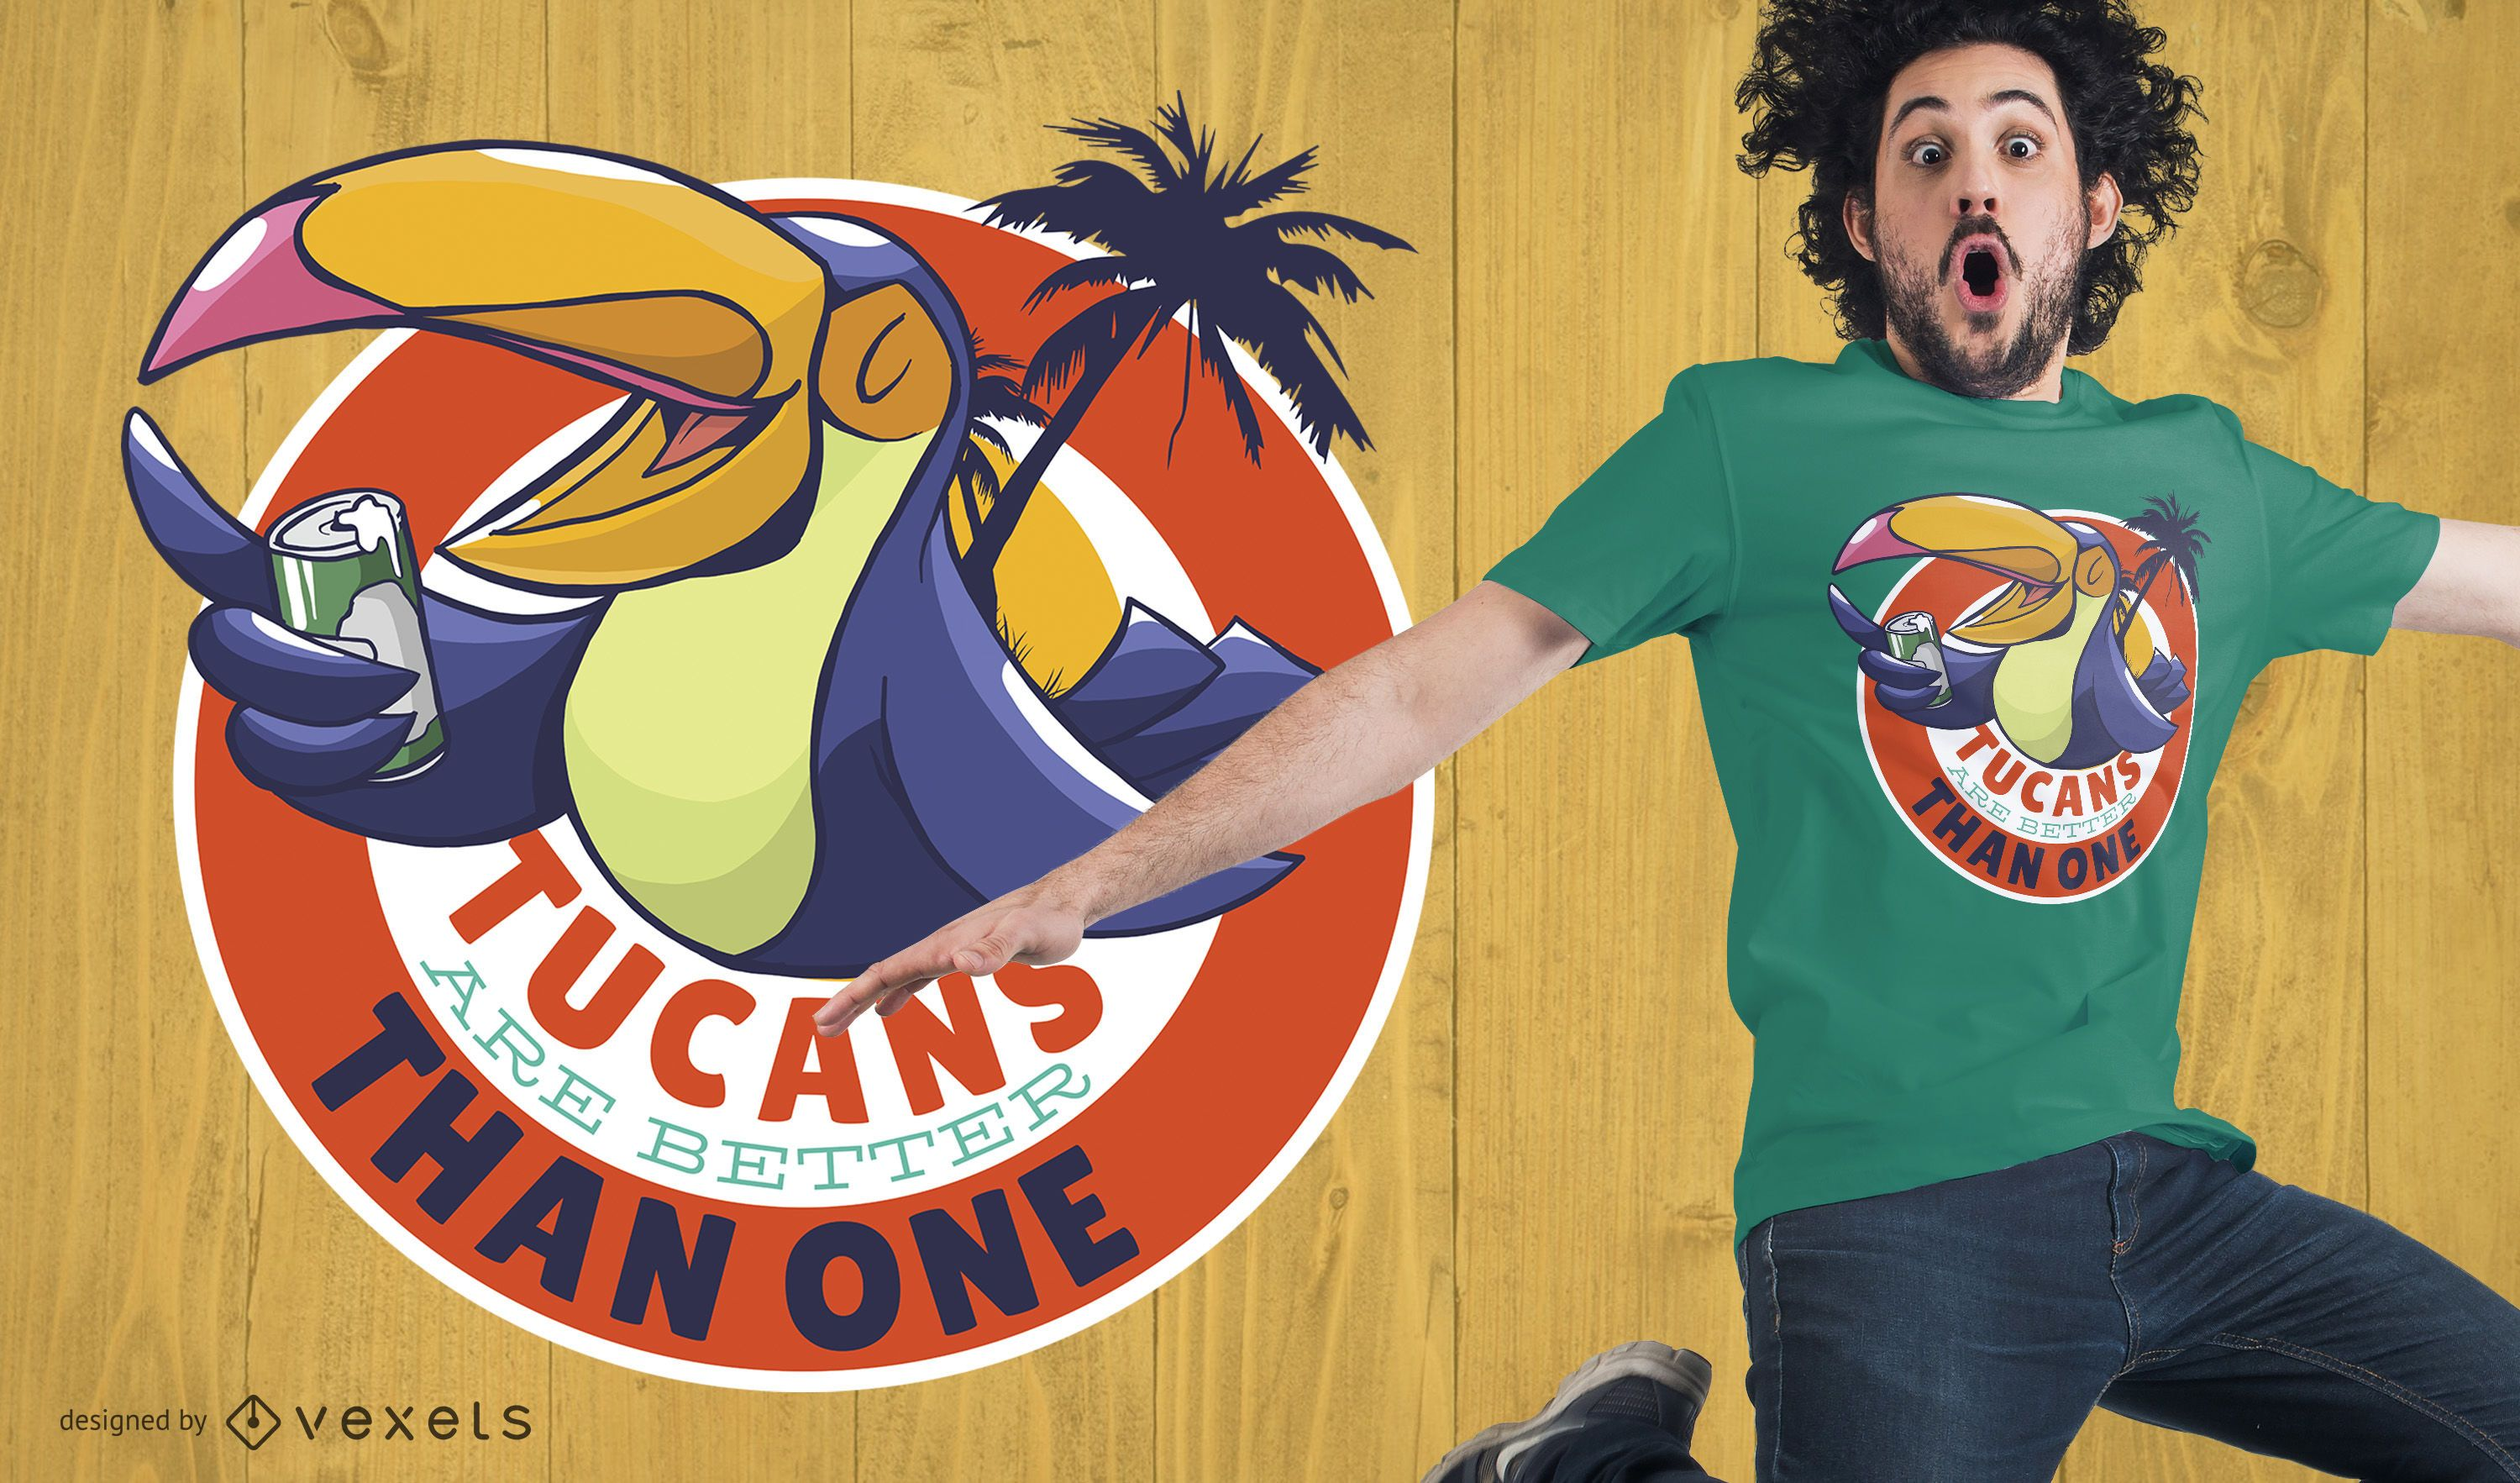 183069fb Tucan Drinking Beer T-Shirt Design. Print ready. Download Large Image  3000x1765px. license image; user